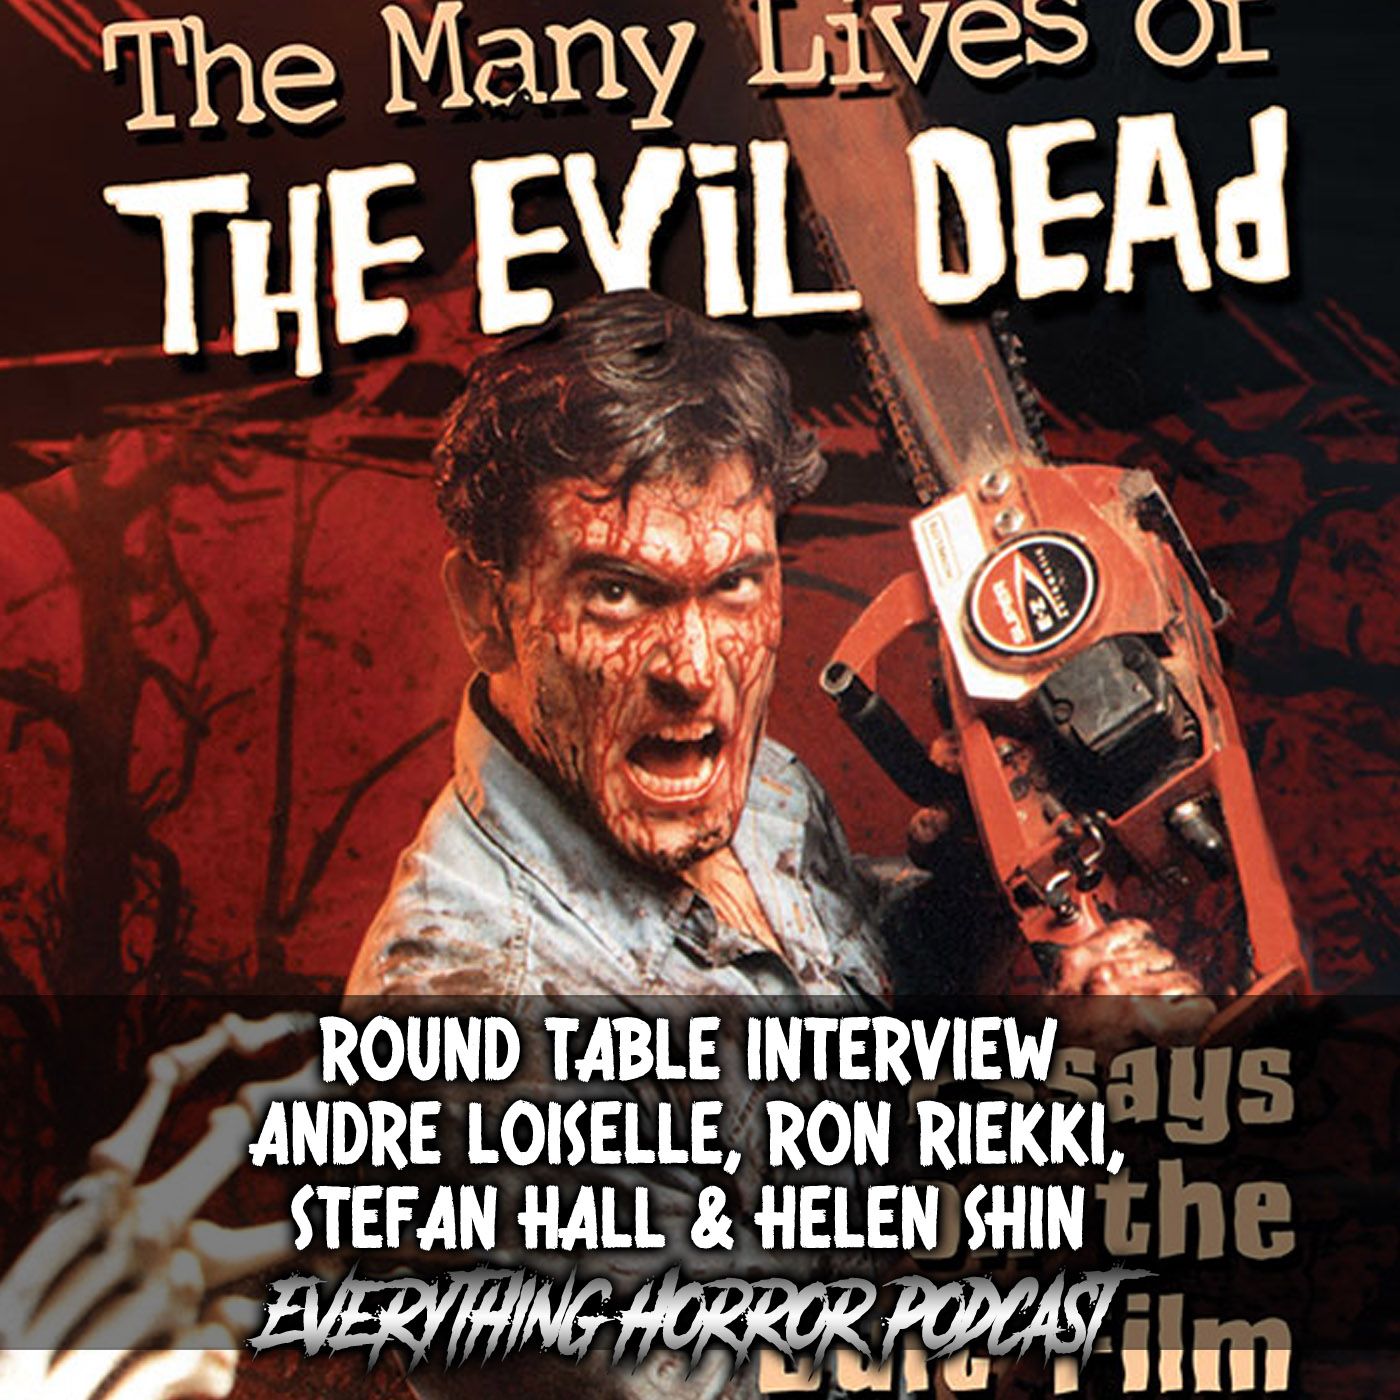 Round Table: The Many Lives of The Evil Dead (Part 2)